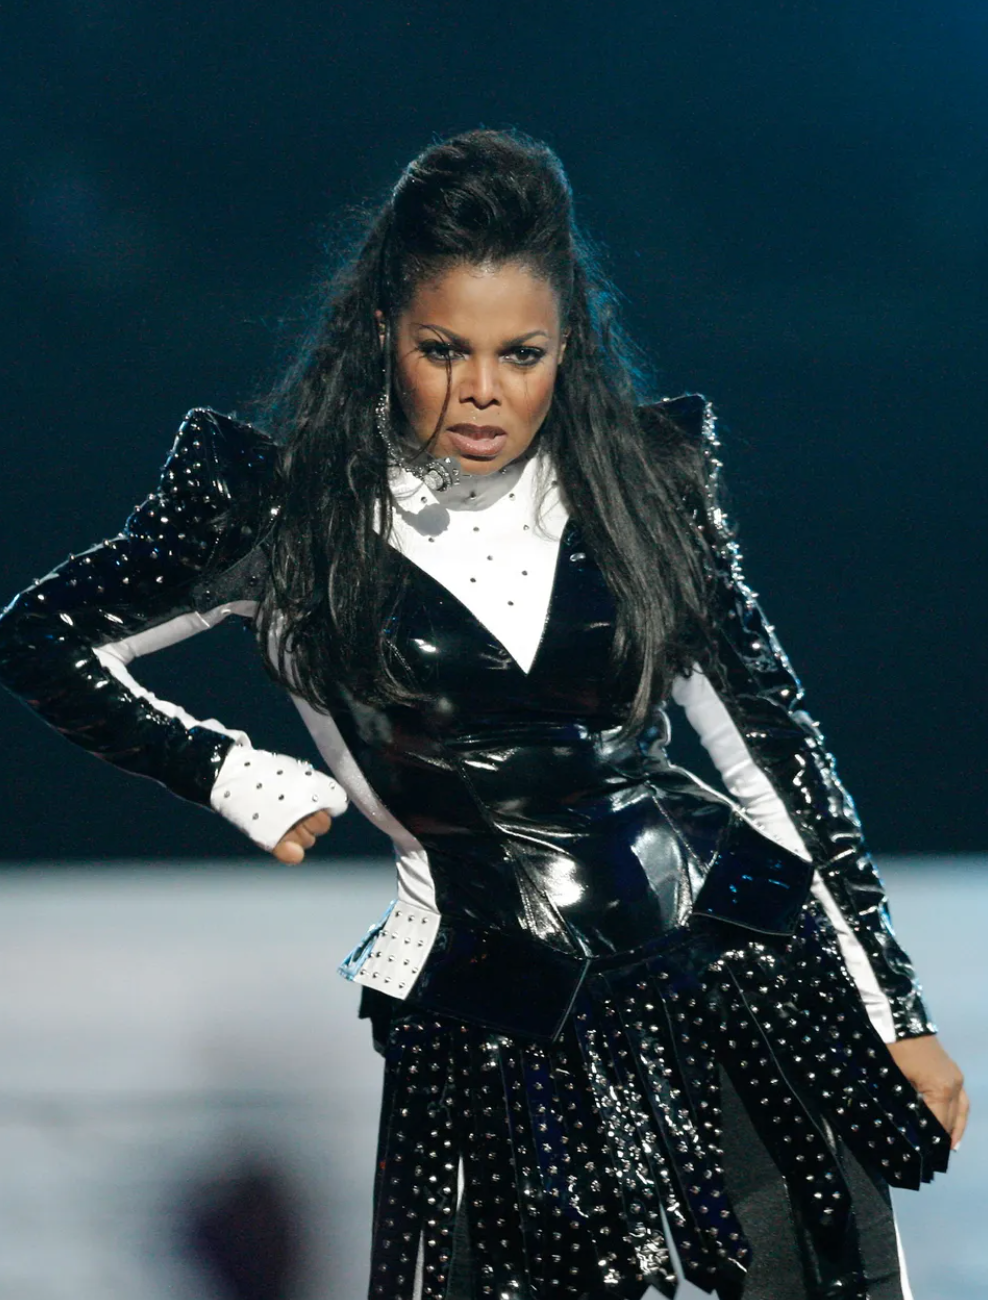 Janet Jackson's Most Iconic Stage Style Looks - Nipplegate Husband Songs